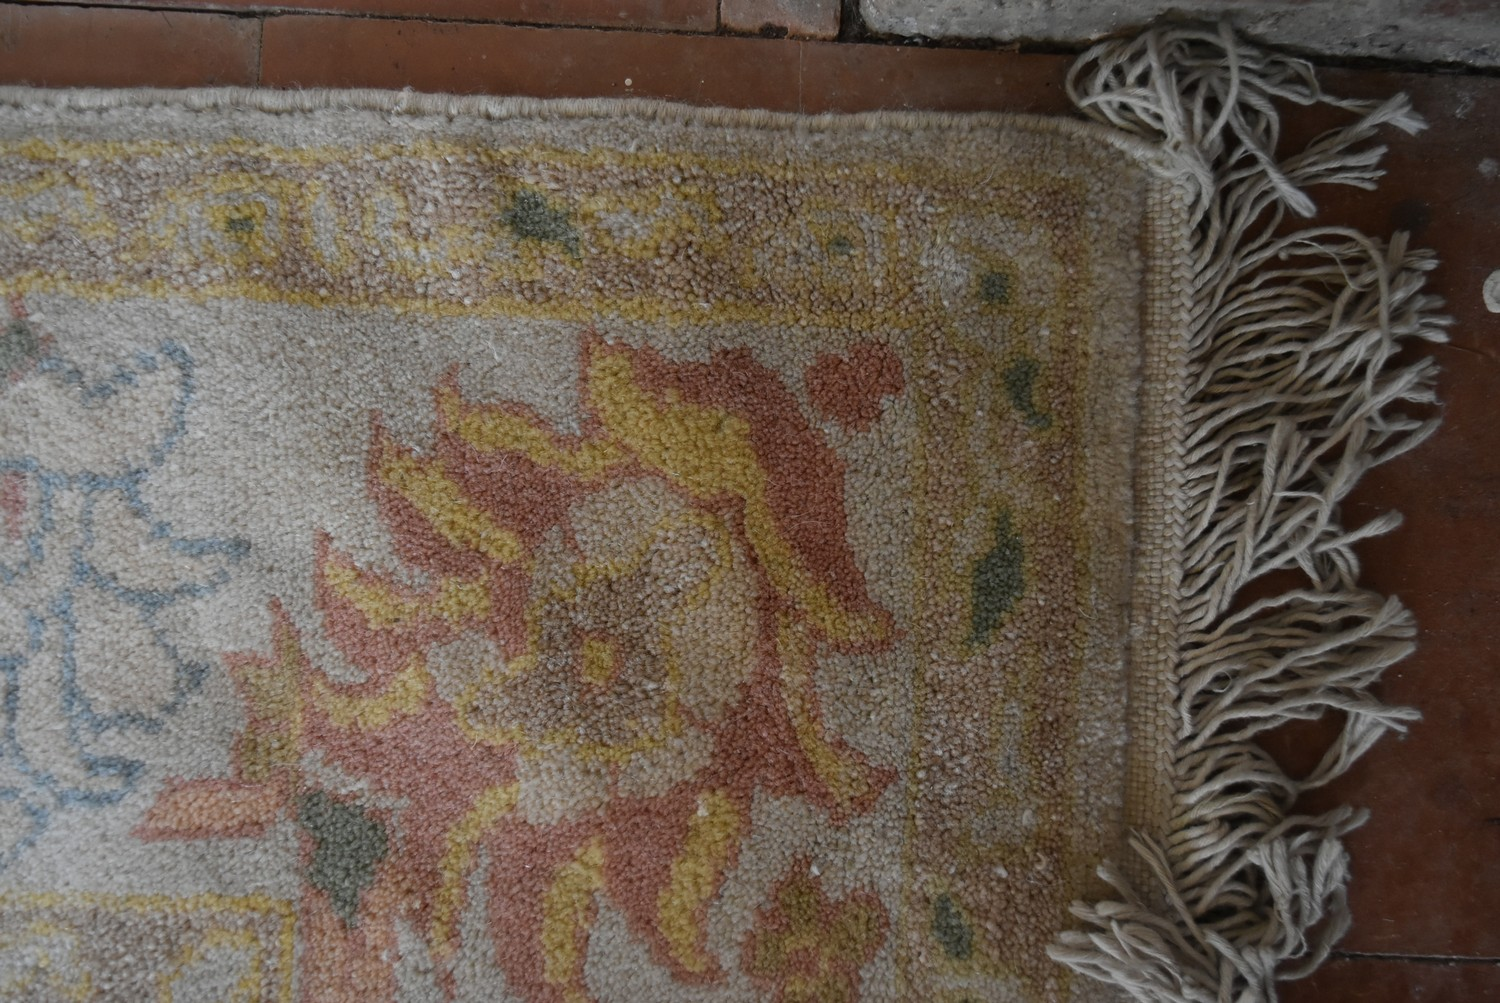 A Ziegler design carpet with repeating floral motifs across the beige field contained by a lotus and - Image 3 of 4